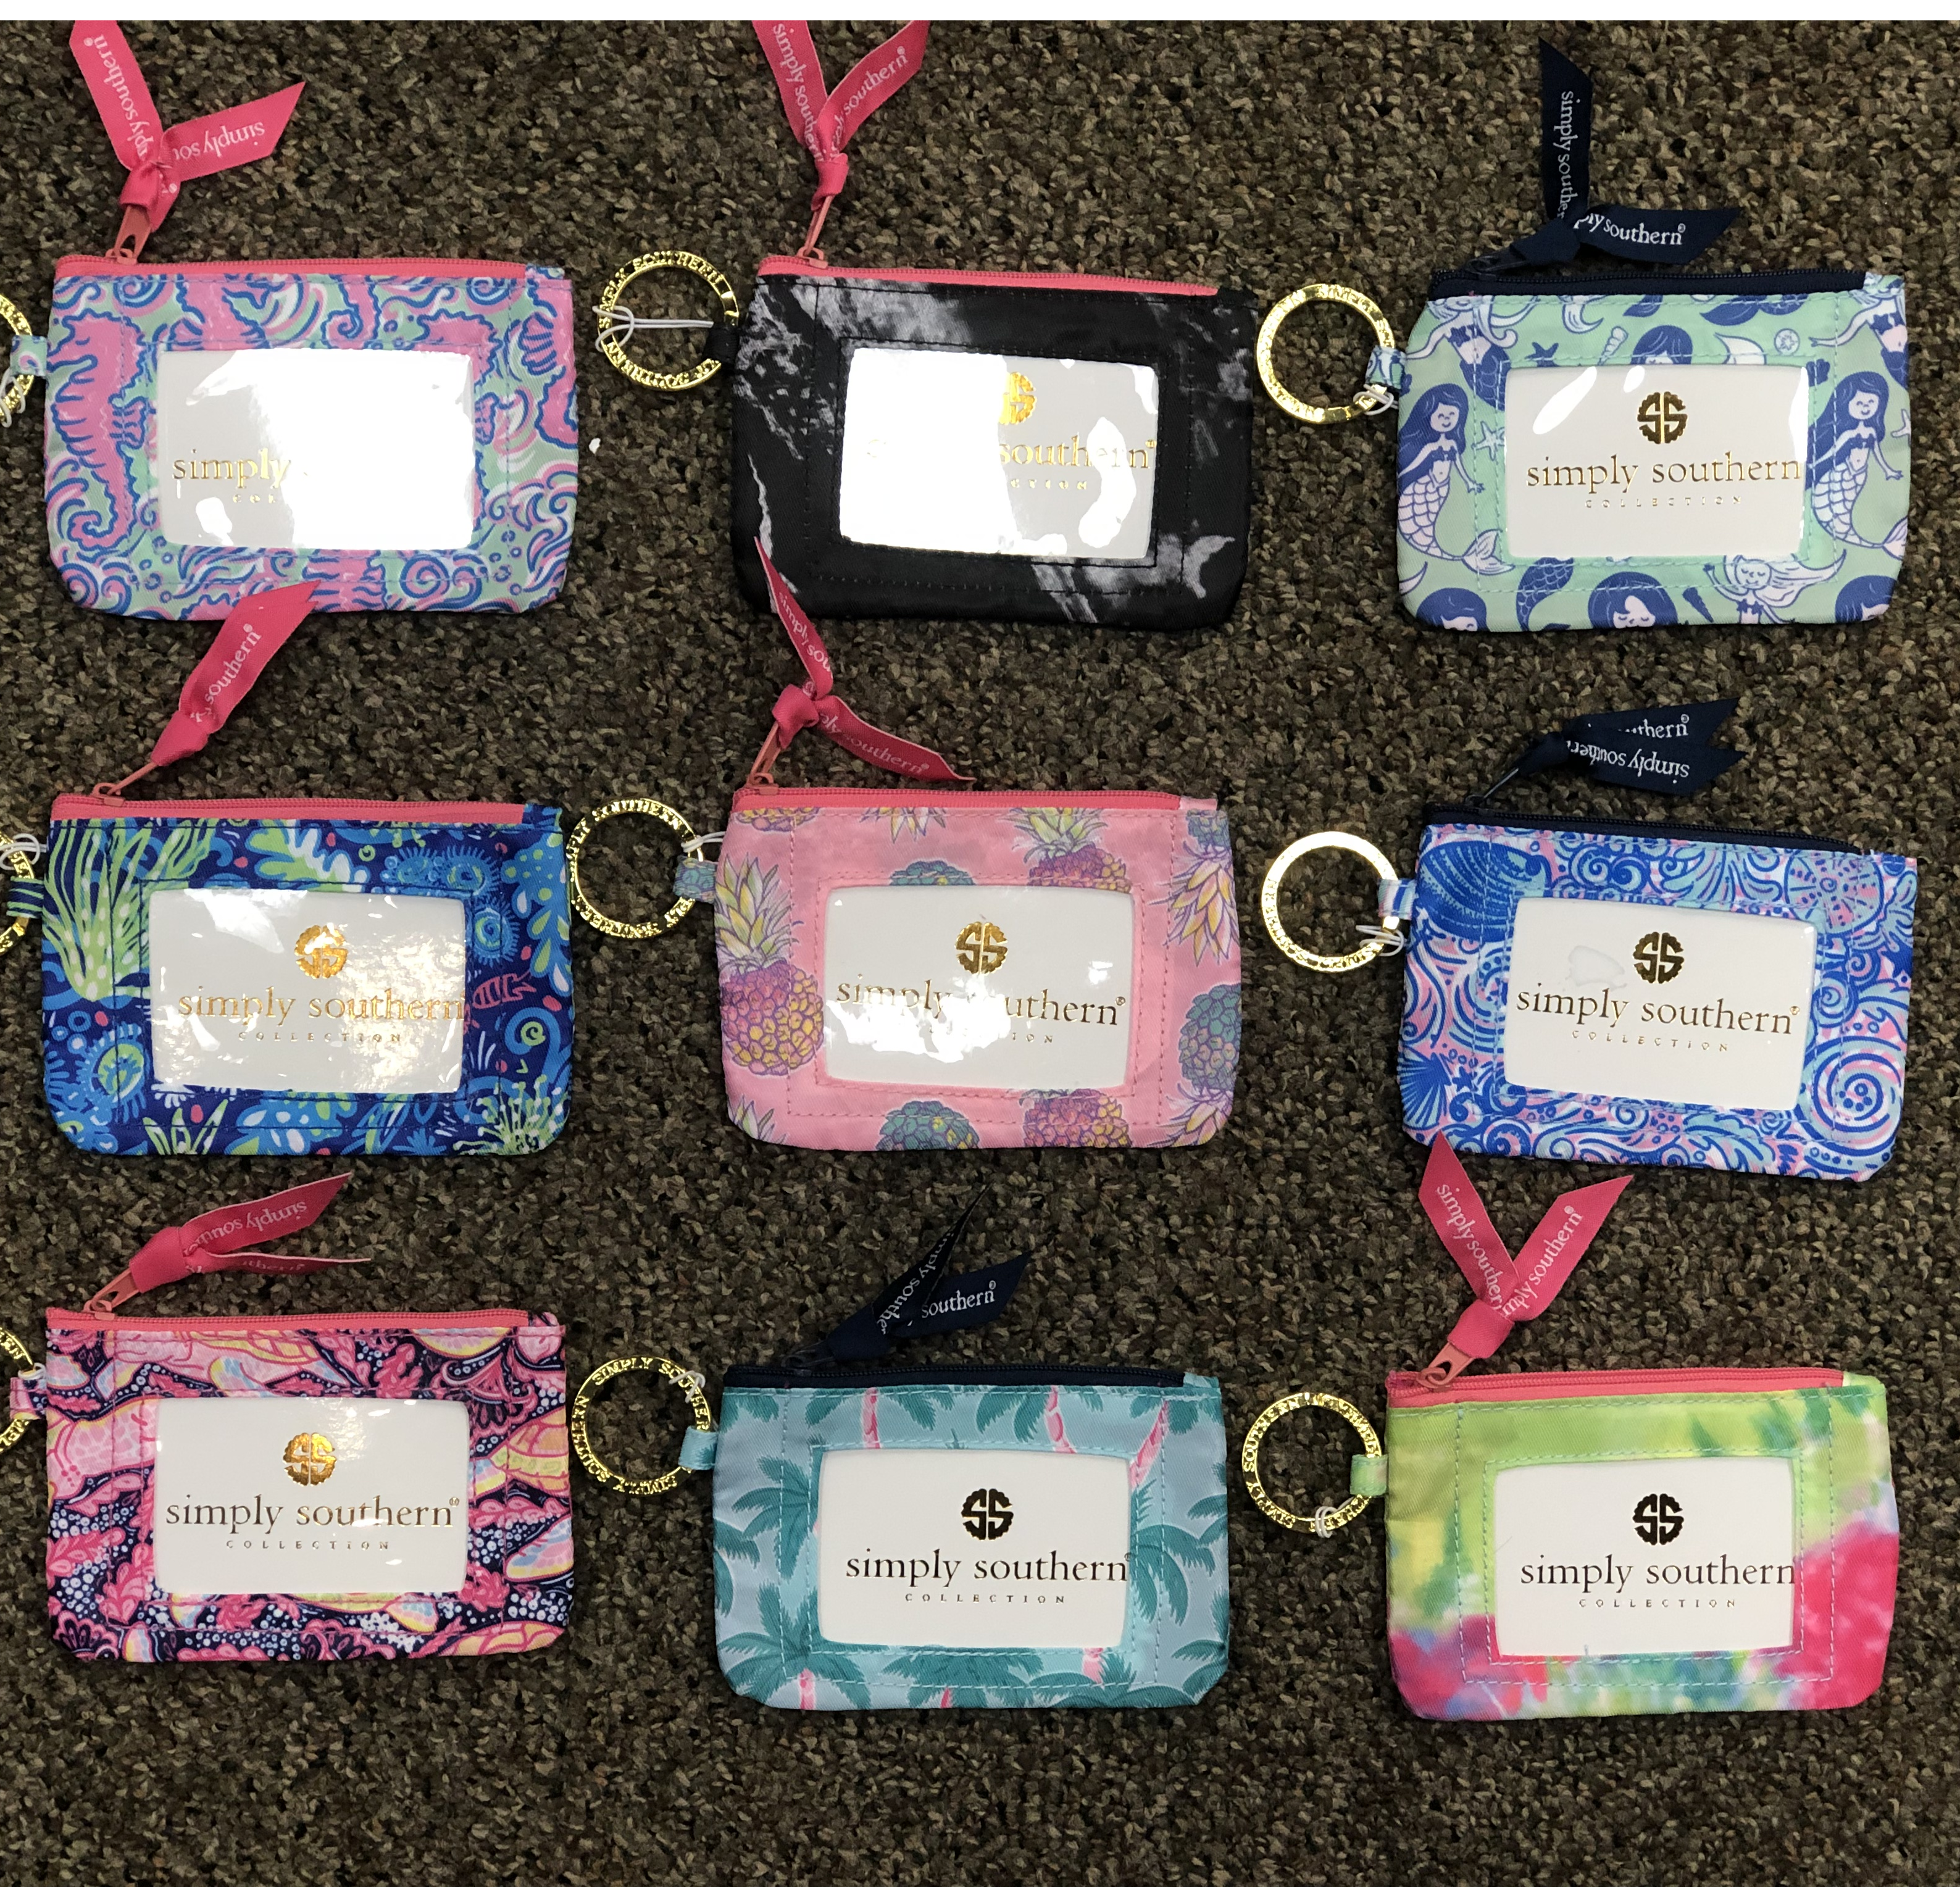 simply southern luggage tag